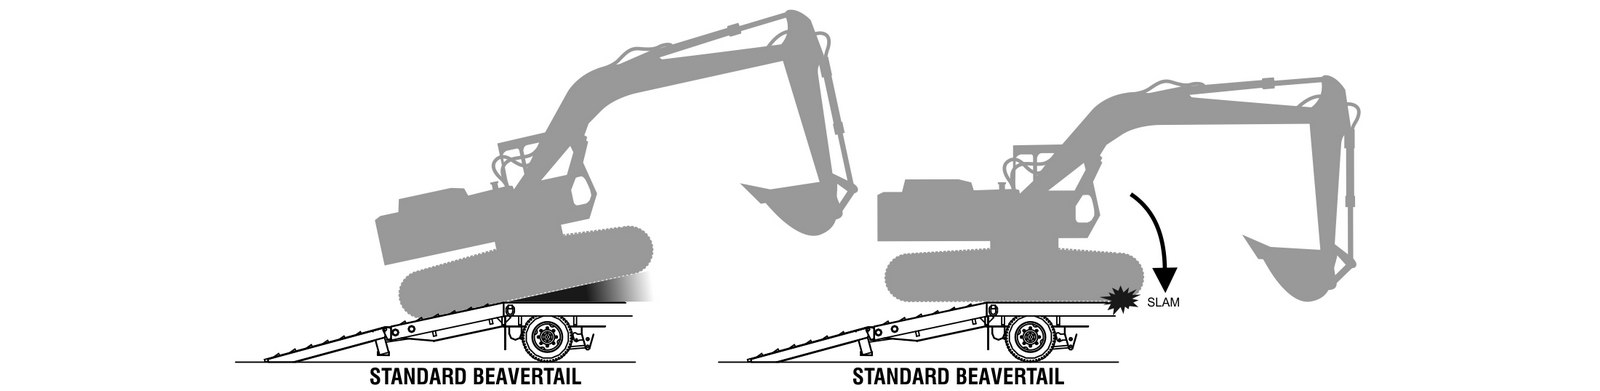 "On a standard beavertail, tracked equipment tends to ""high-point"" before the front of it ""slams"" onto the trailer deck, making loading and unloading a bit nerving."